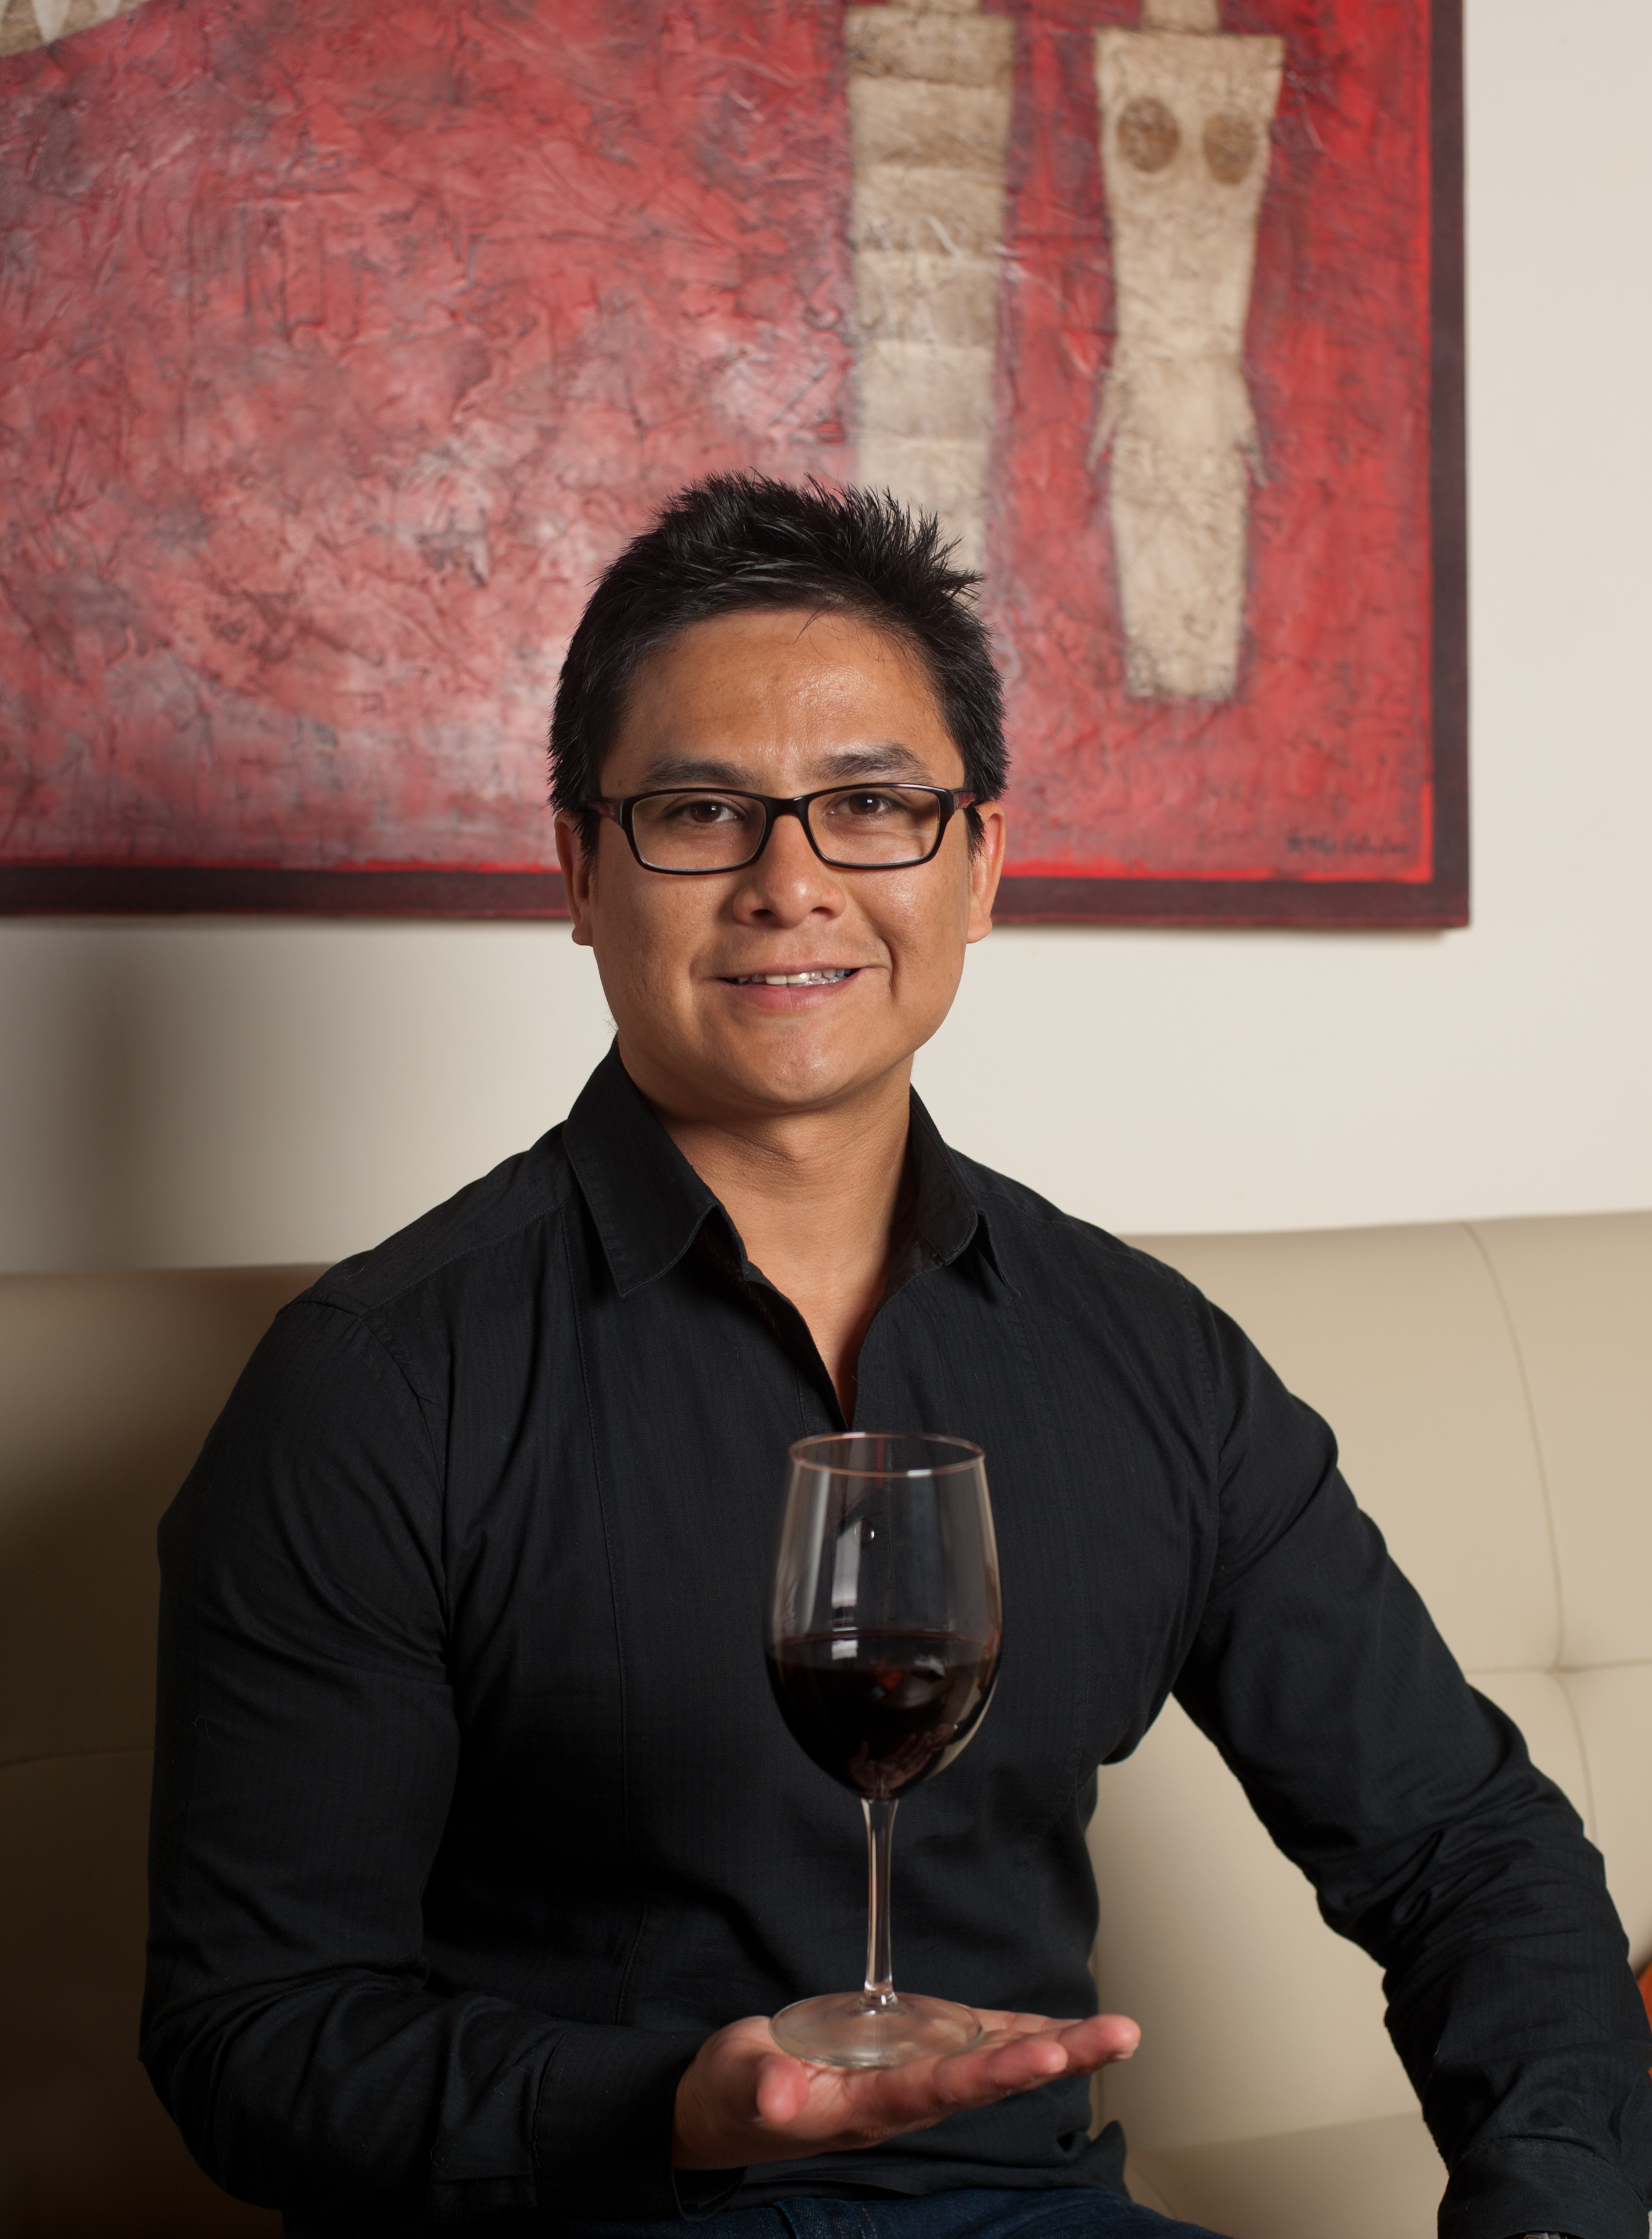 UC Davis-trained wine educator featured at Winestock SF